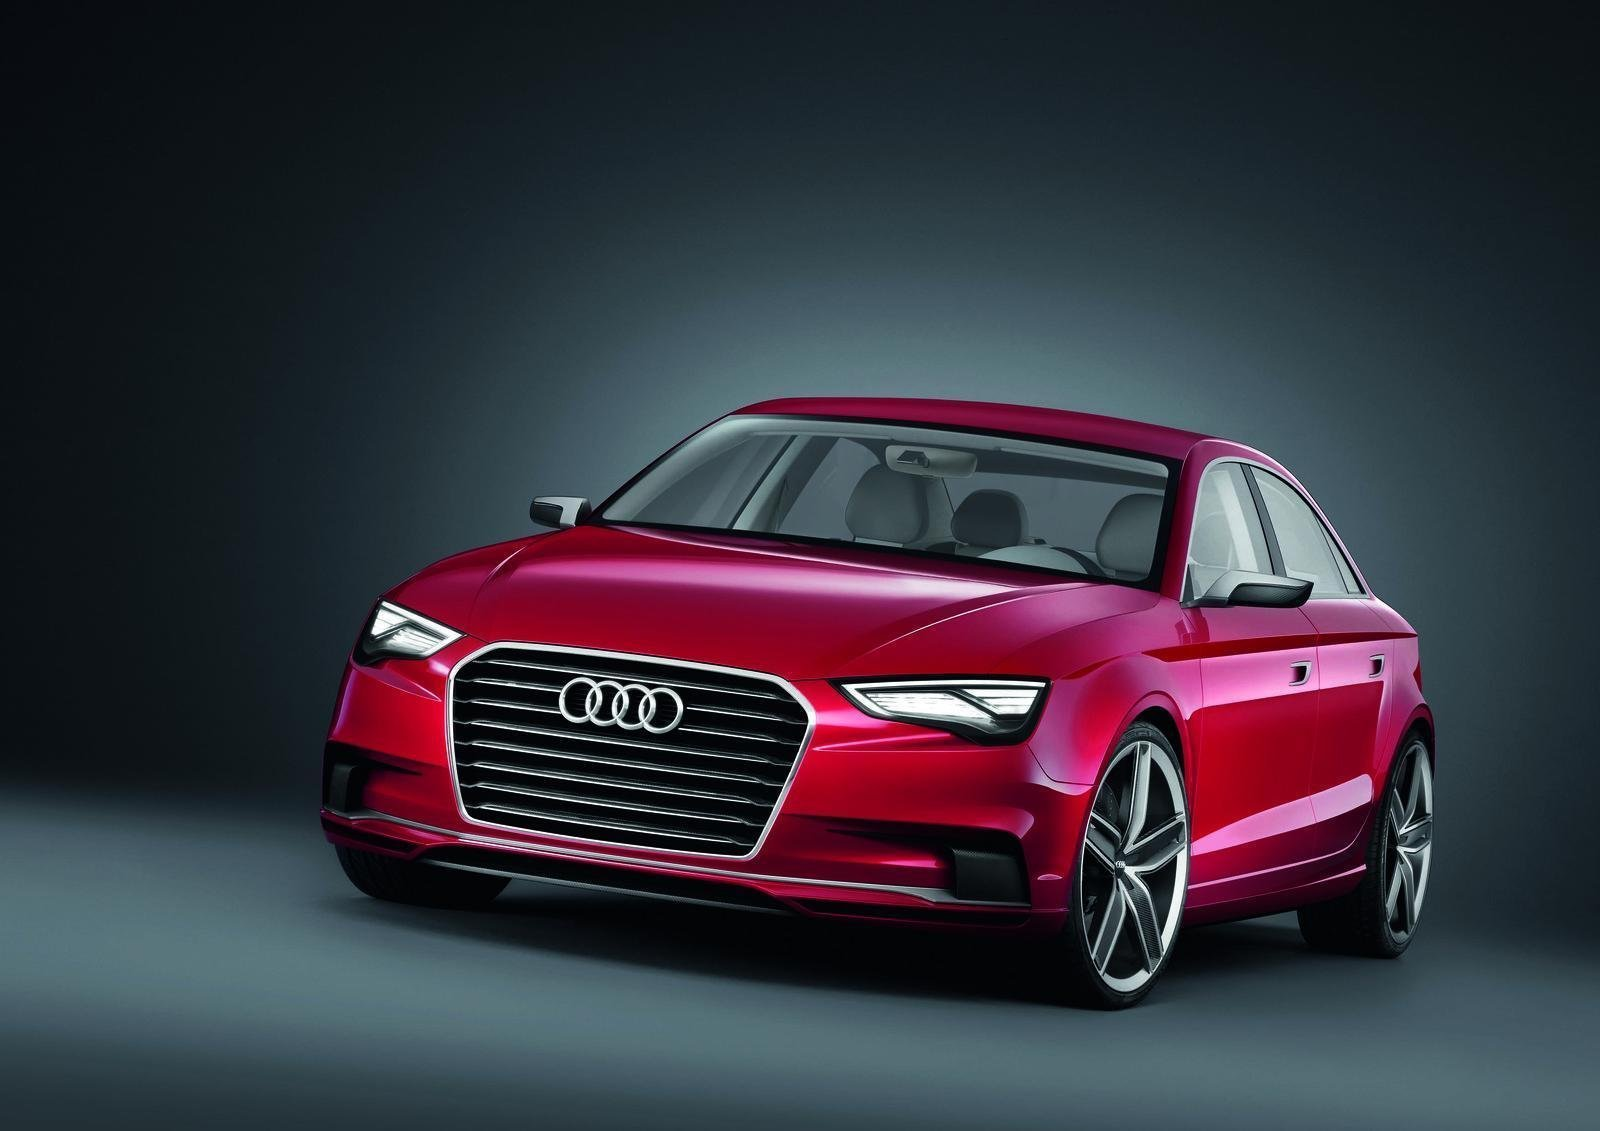 Latest 2011 Audi A3 Concept Top Speed Free Download